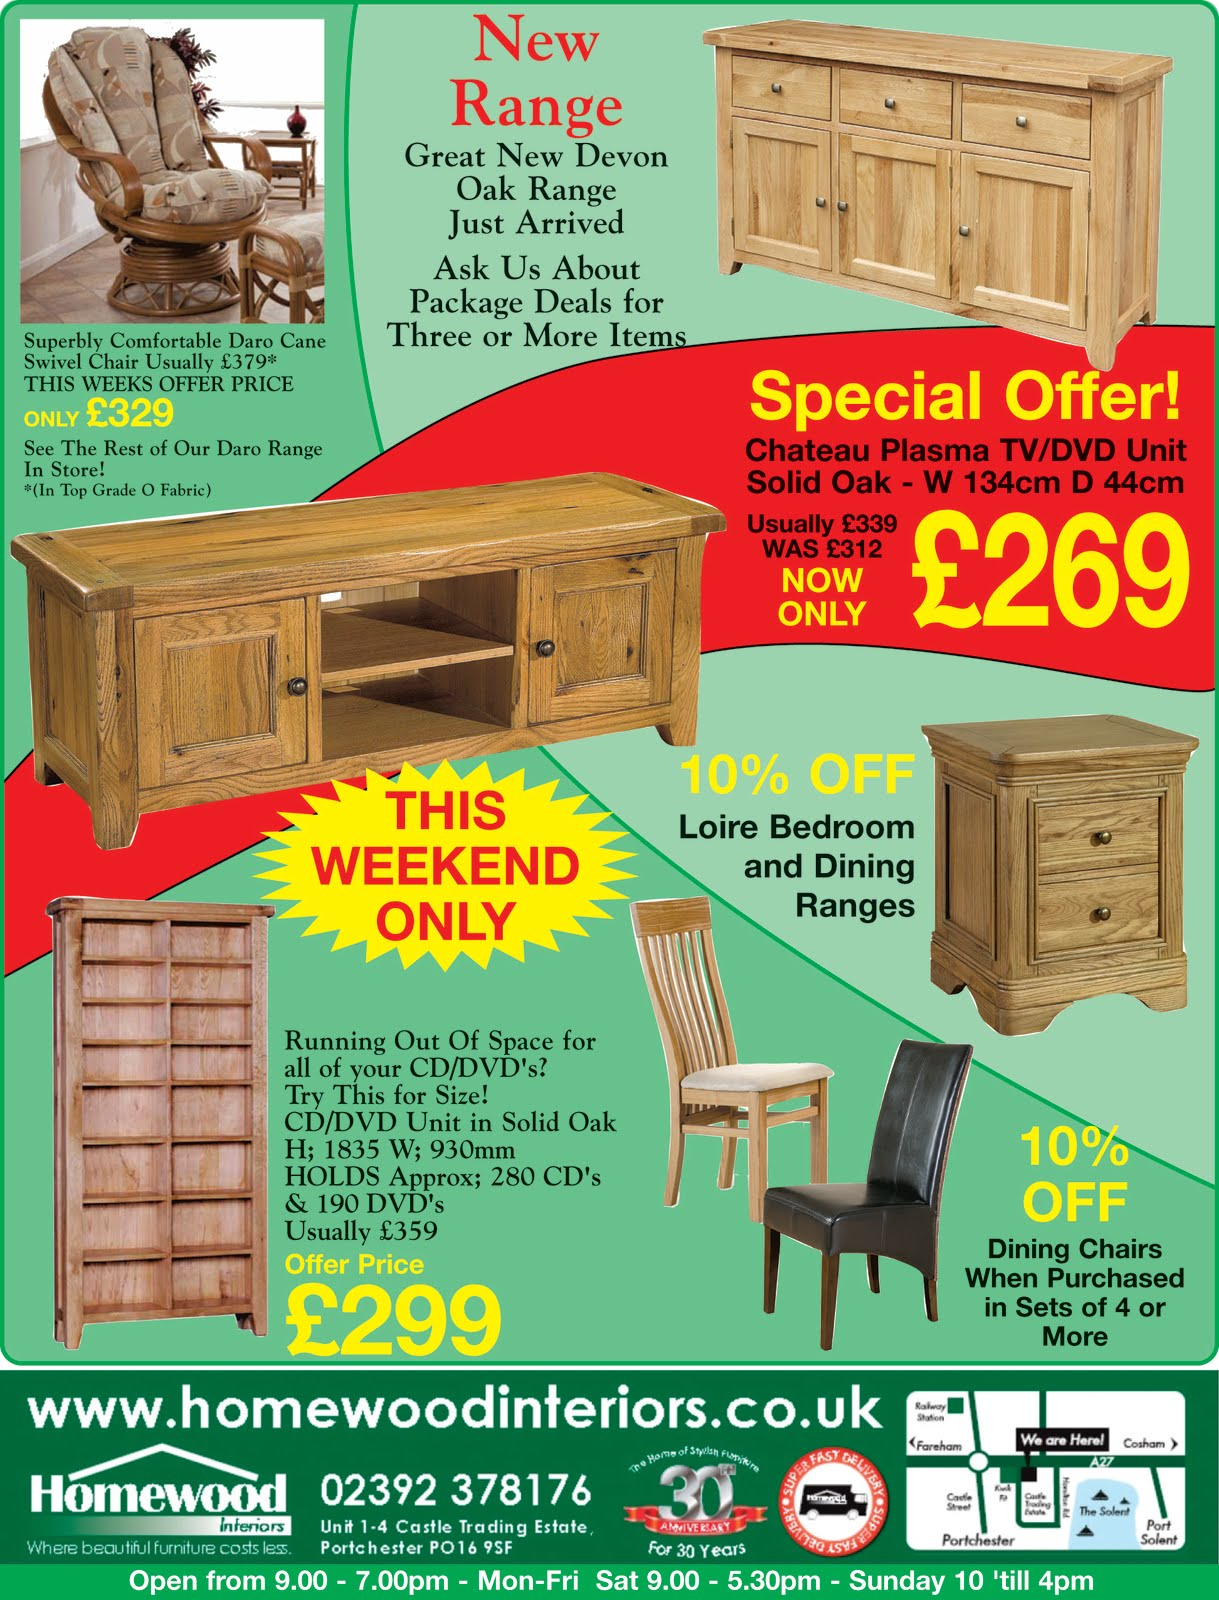 Aliving Room Furniture: This Weekend ONLY Ends Today